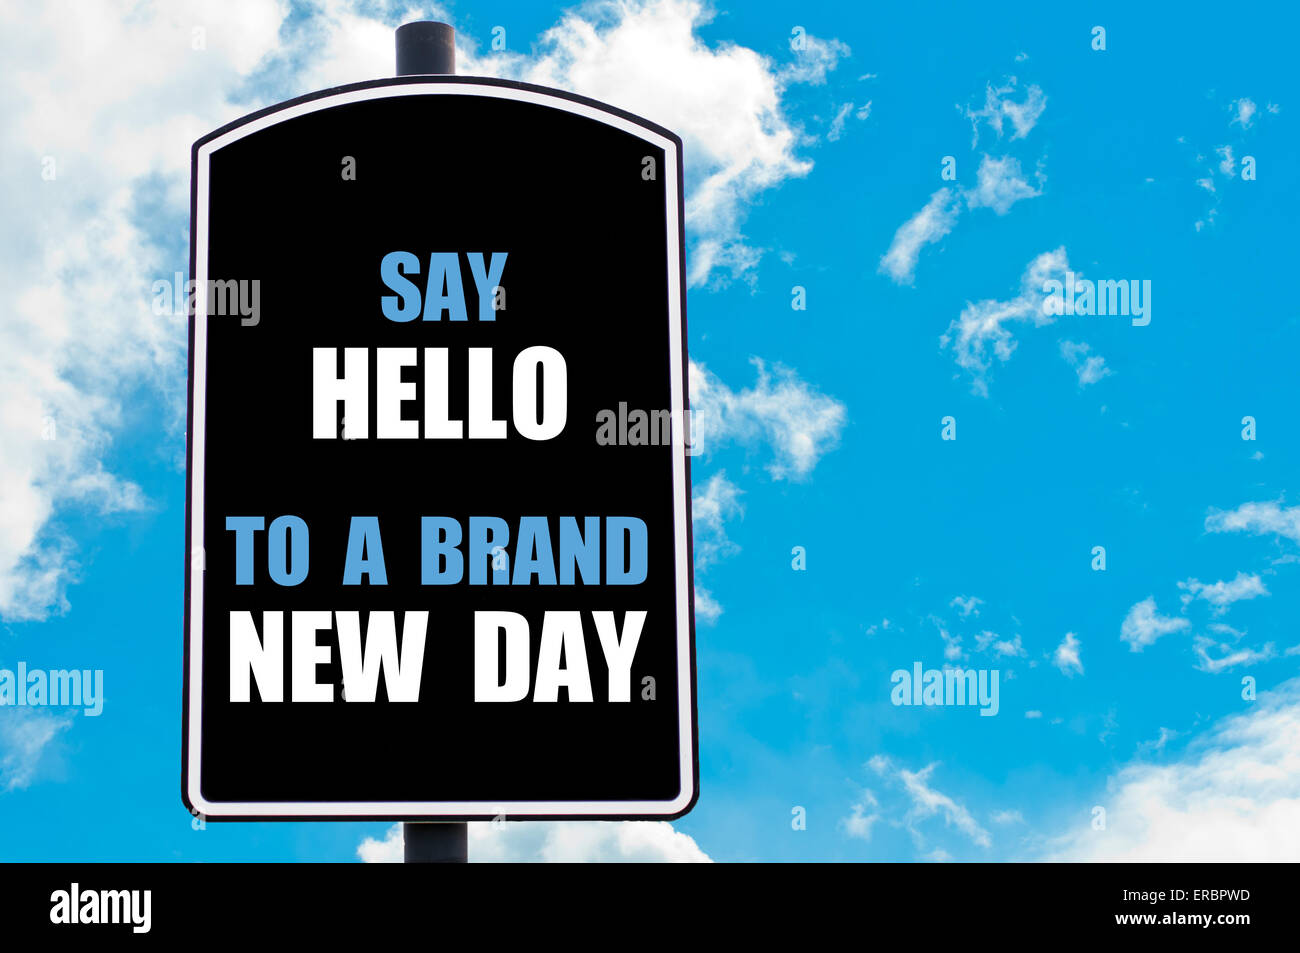 Brand New Day Quotes: SAY HELLO TO A BRAND NEW DAY Motivational Quote Written On